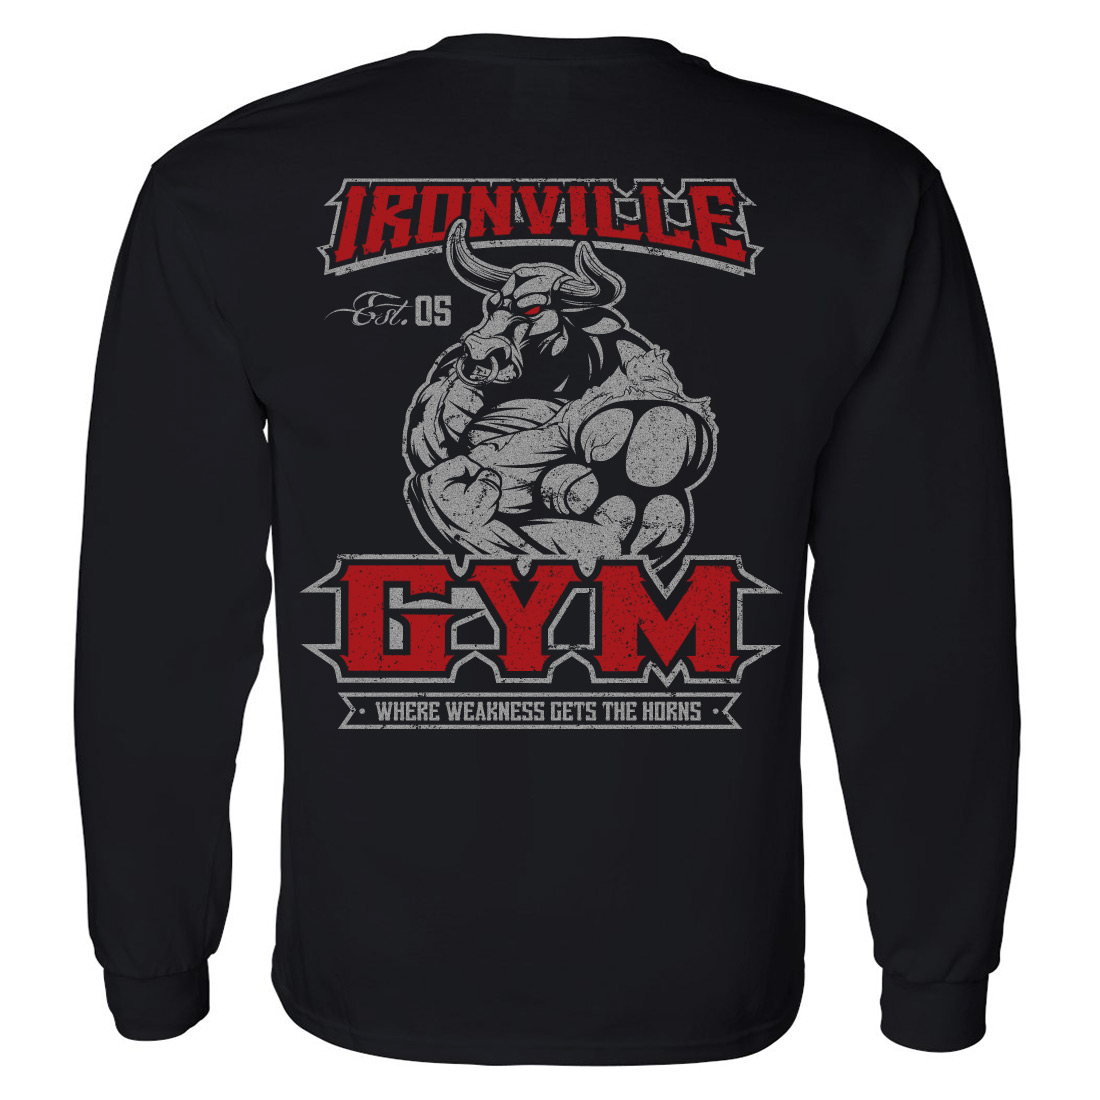 ironville gym bull horns powerlifting long sleeve t shirt